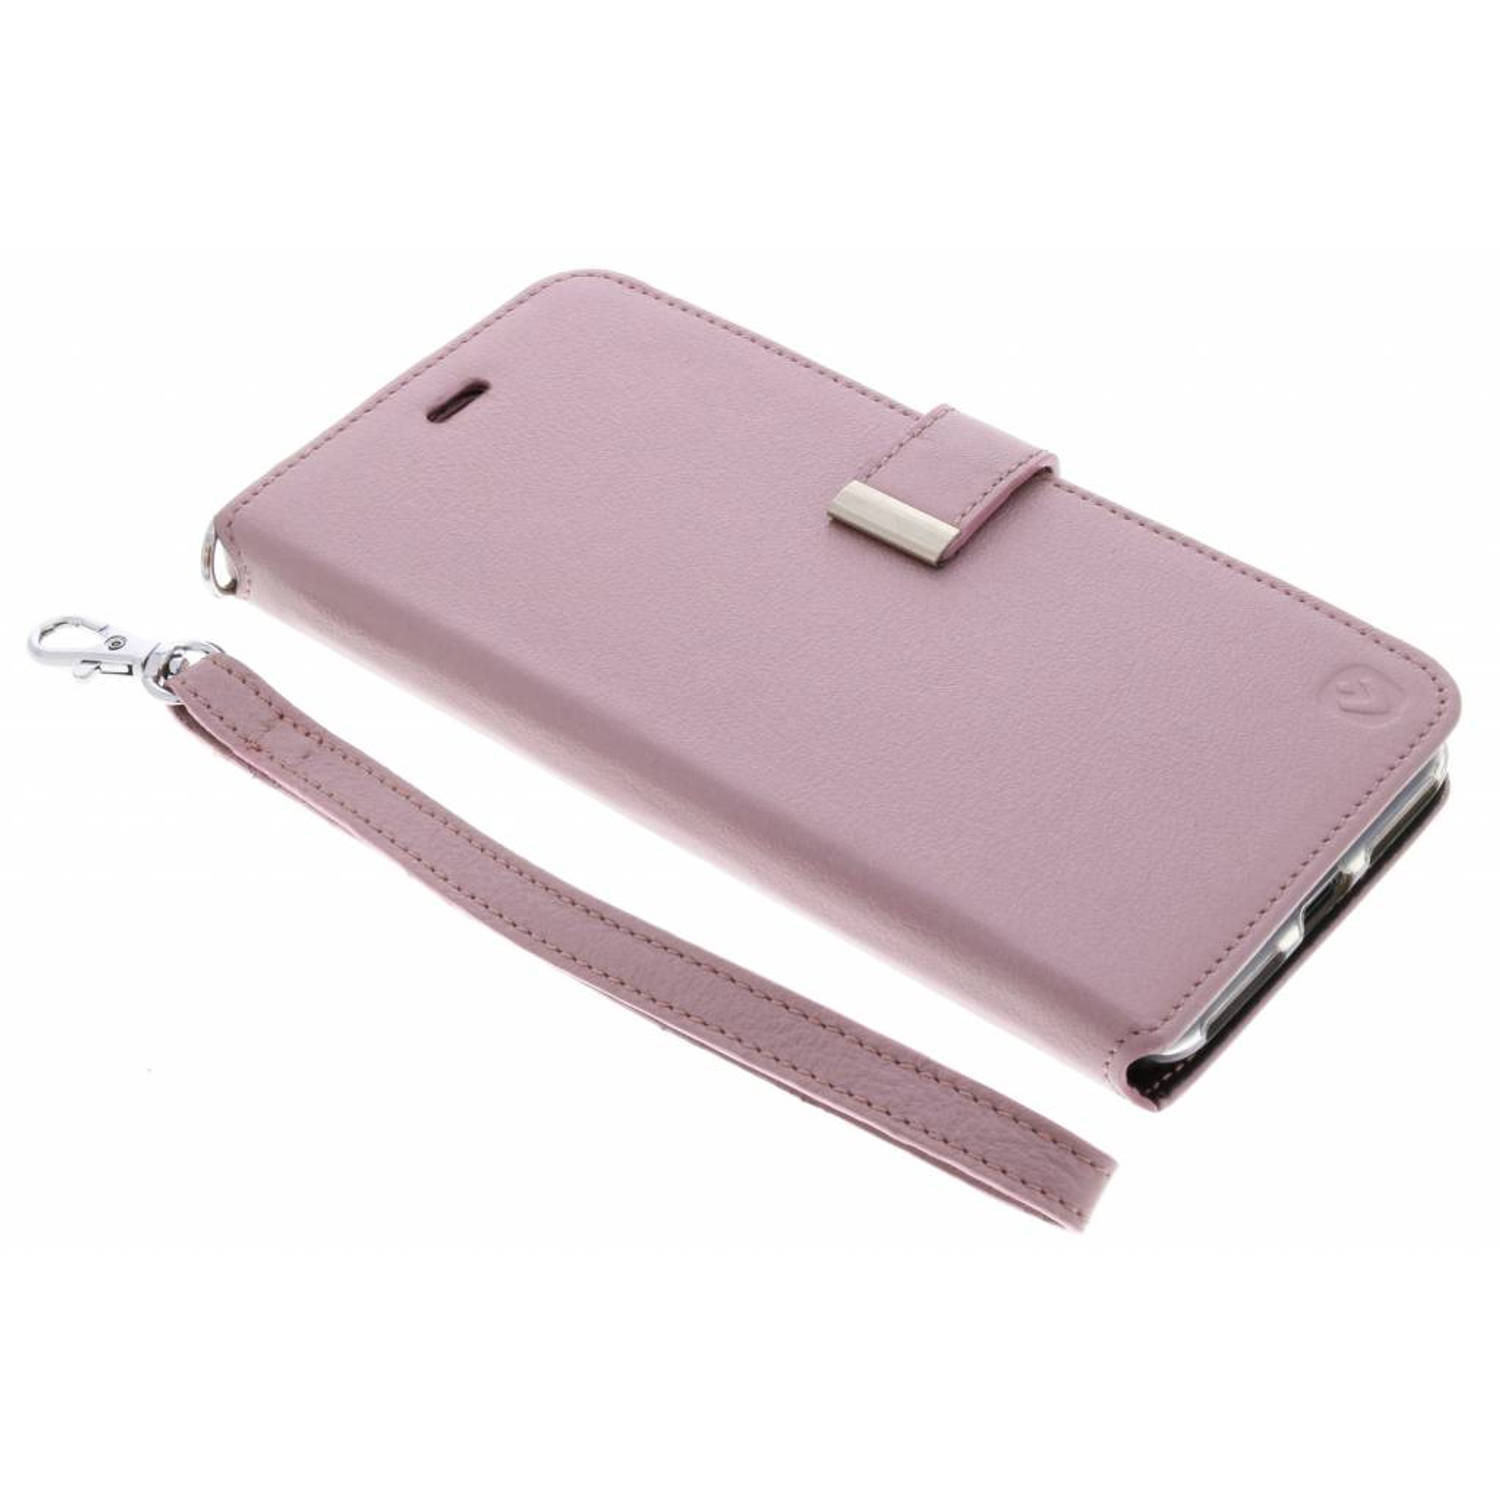 Roze Booklet Premium Handstrap voor de iPhone 8 Plus / 7 Plus